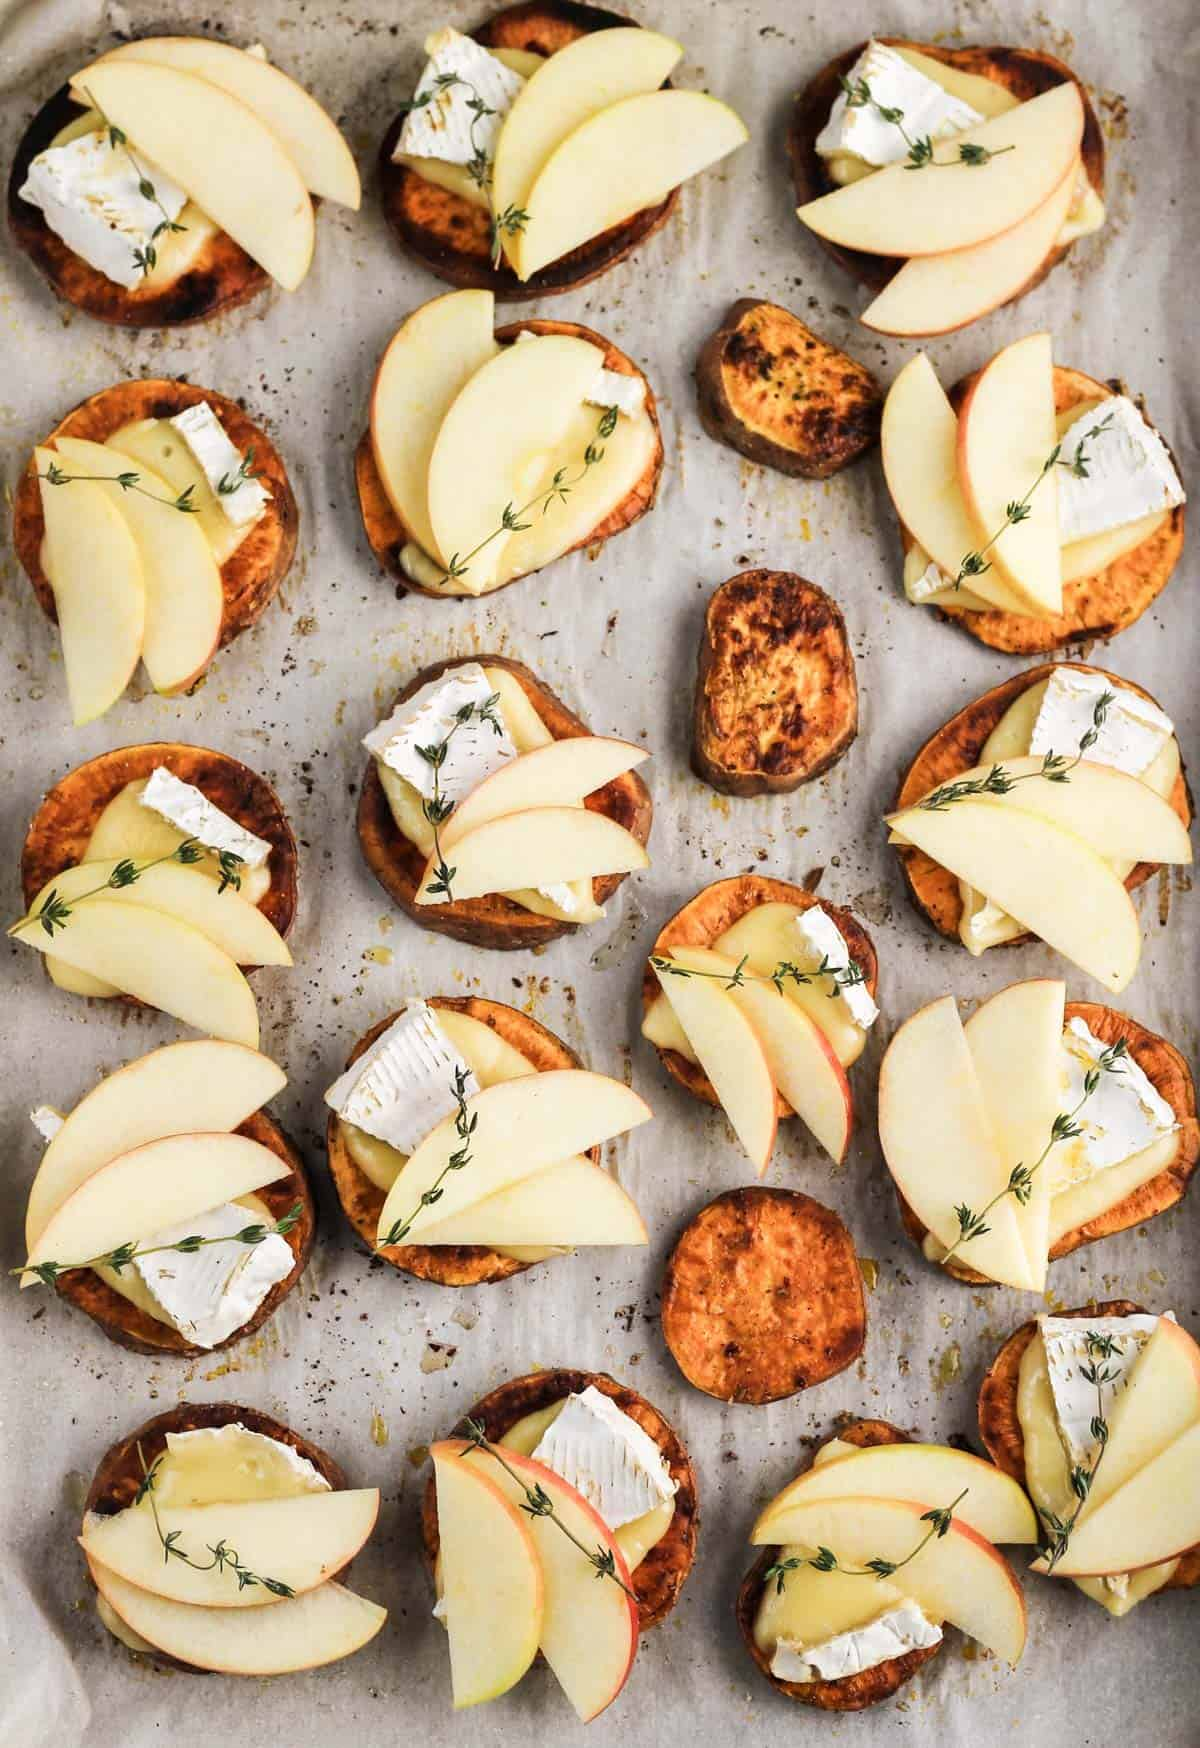 Assembled apple and brie sweet potato crostini on a parchment-lined sheet pan.